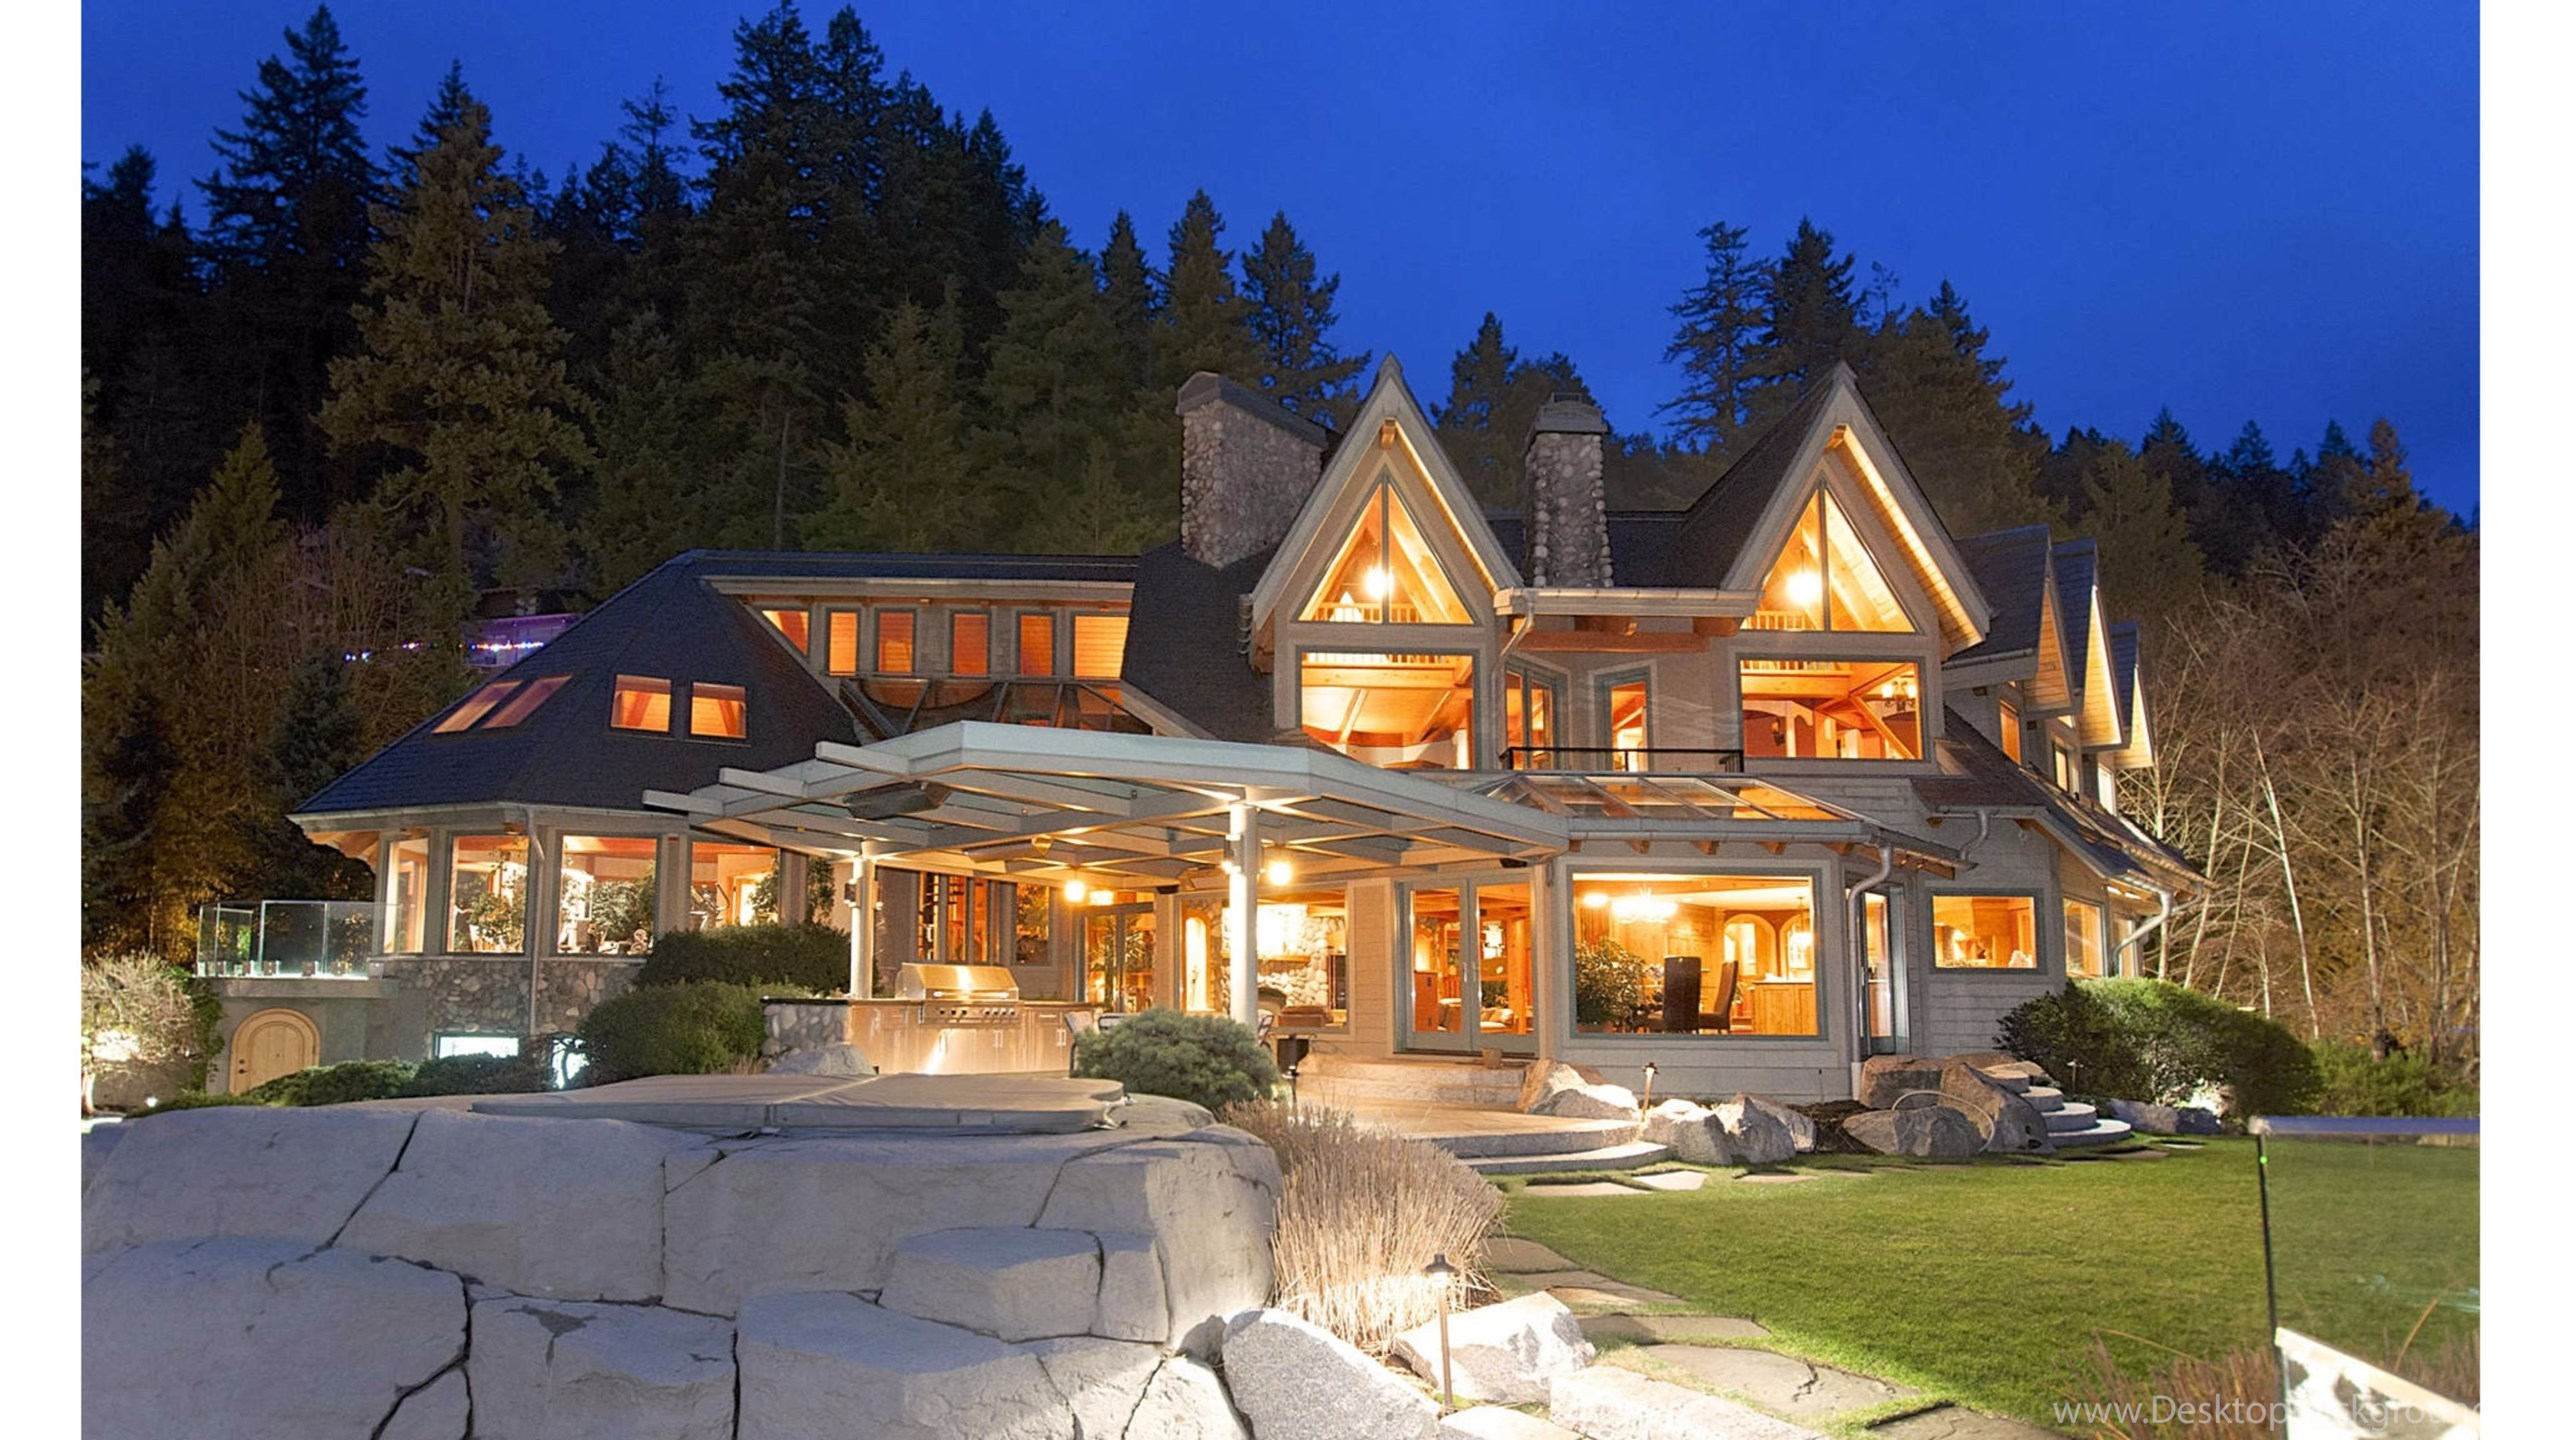 Luxury homes 4k vancouver canada wallpapers desktop background - Luxury house wallpaper ...